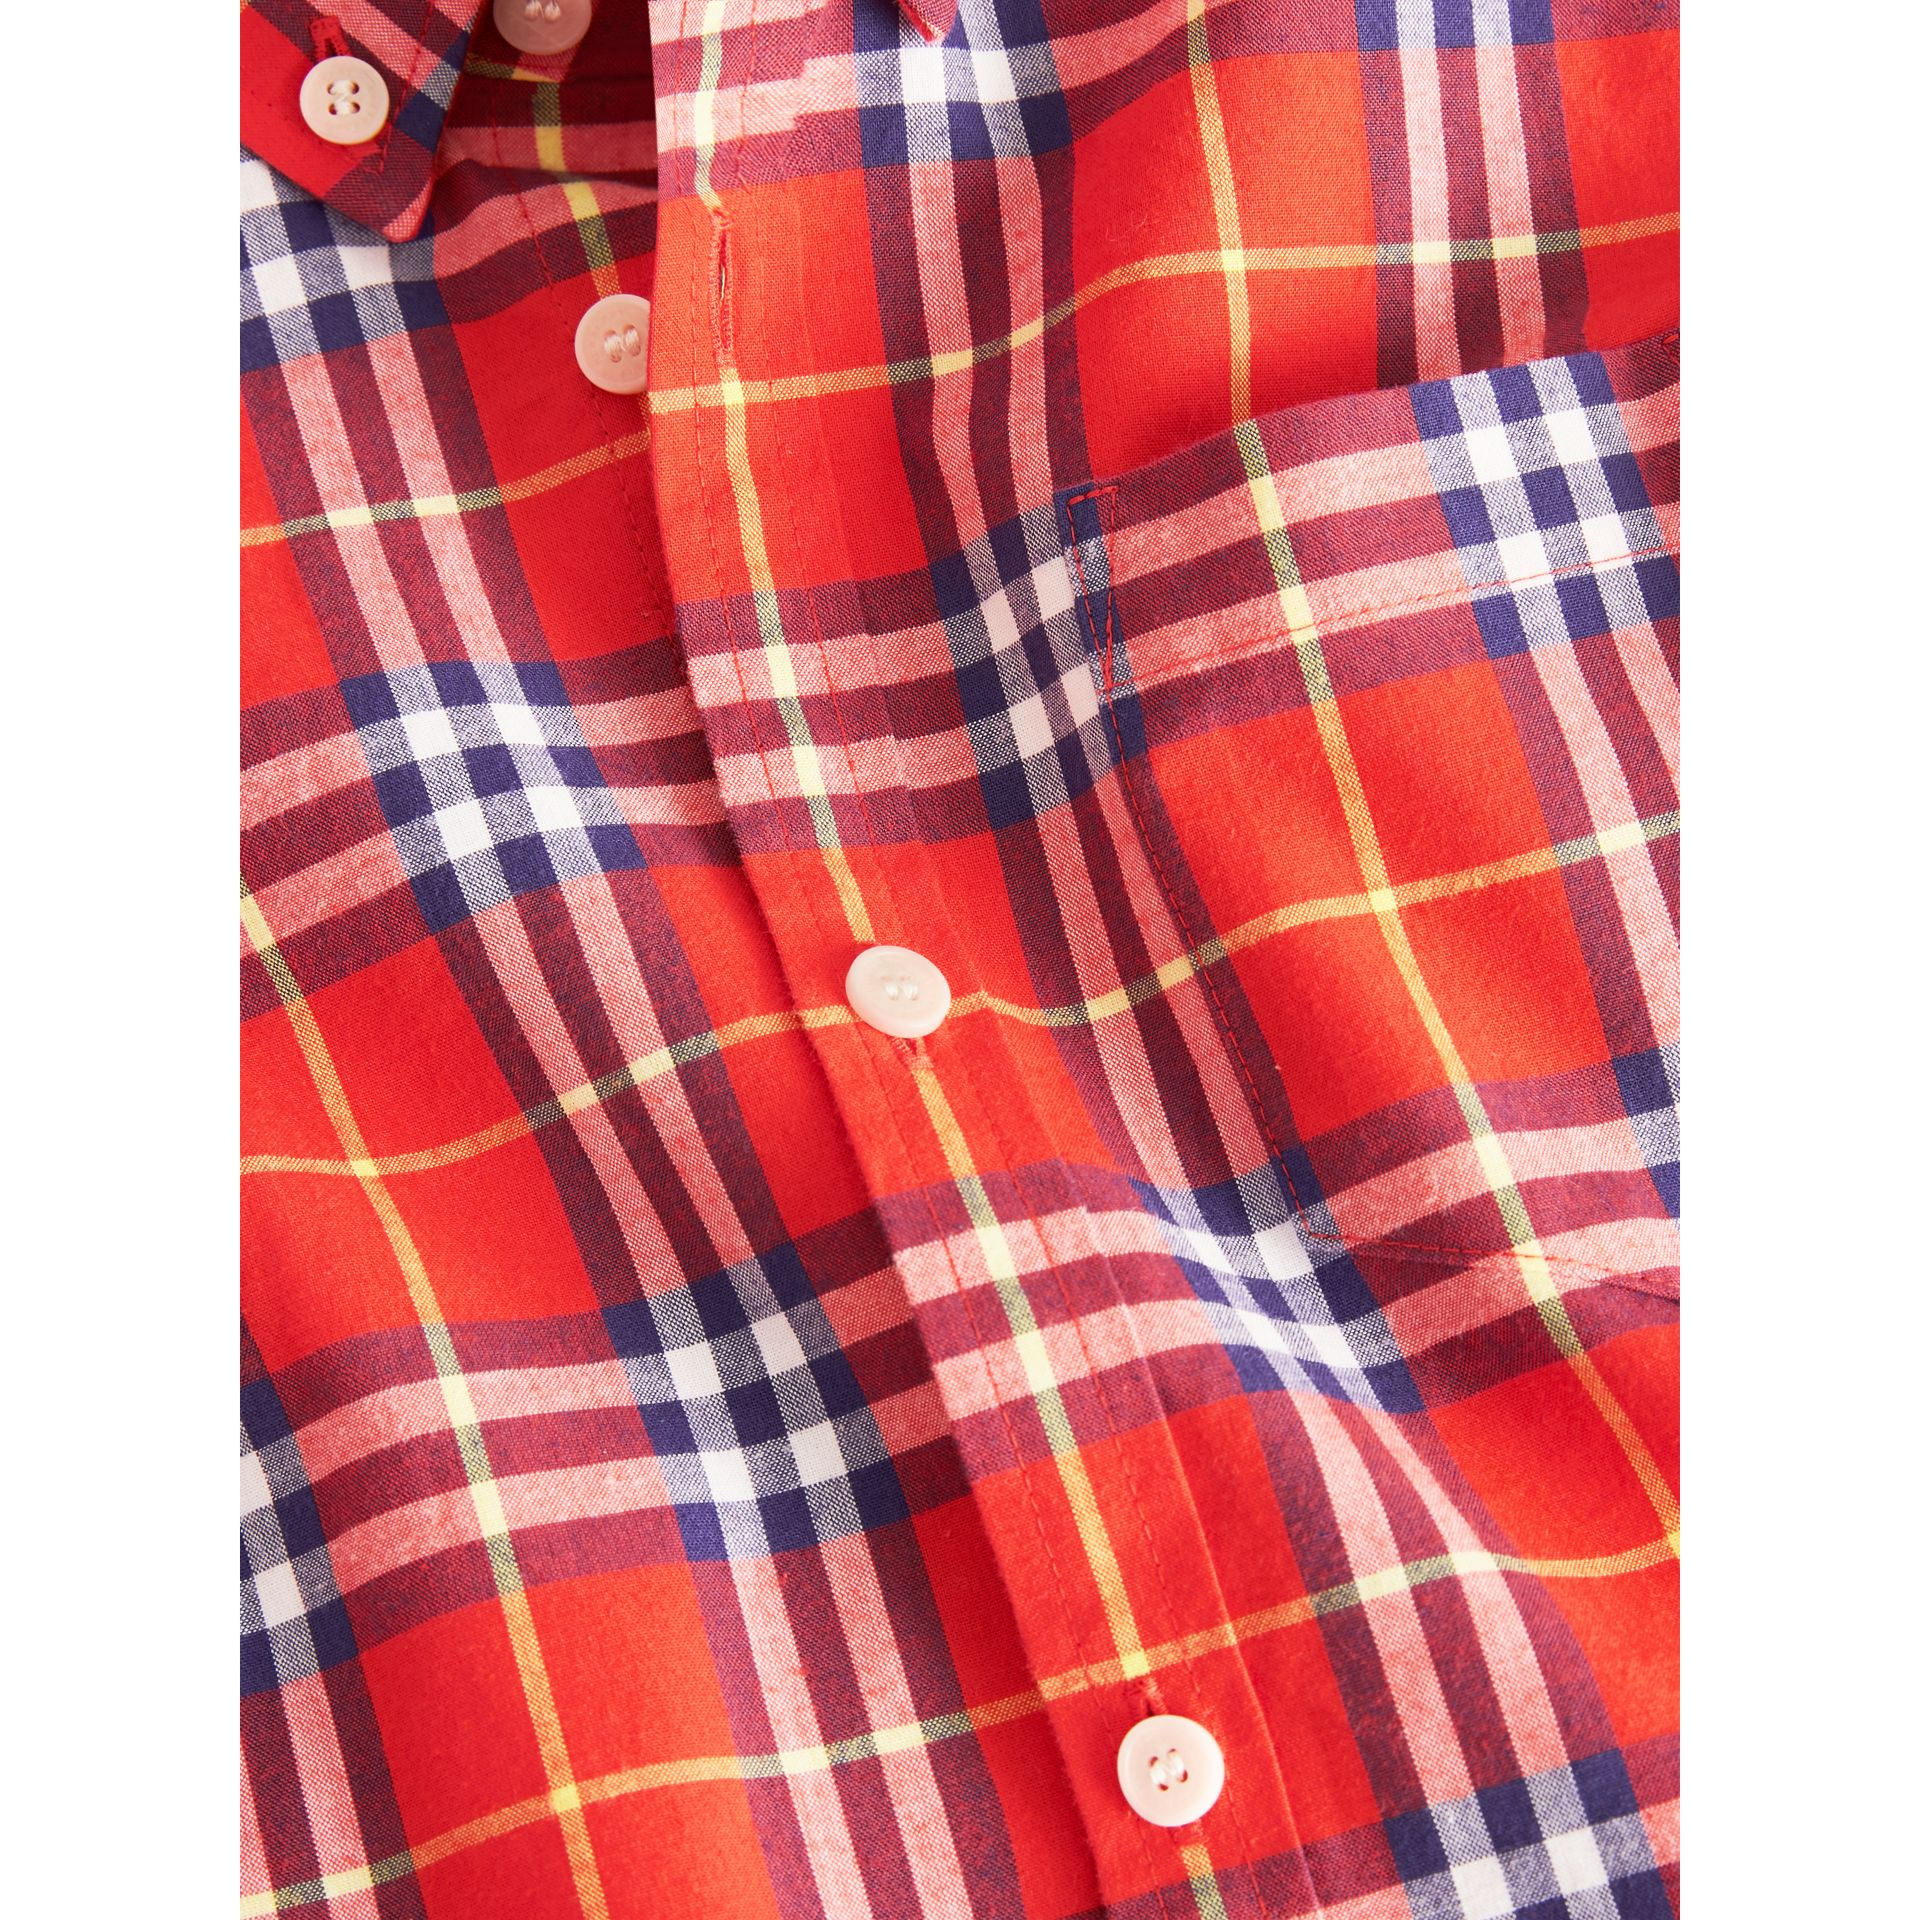 Button-down Collar Check Flannel Shirt in Orange Red | Burberry Canada - gallery image 1